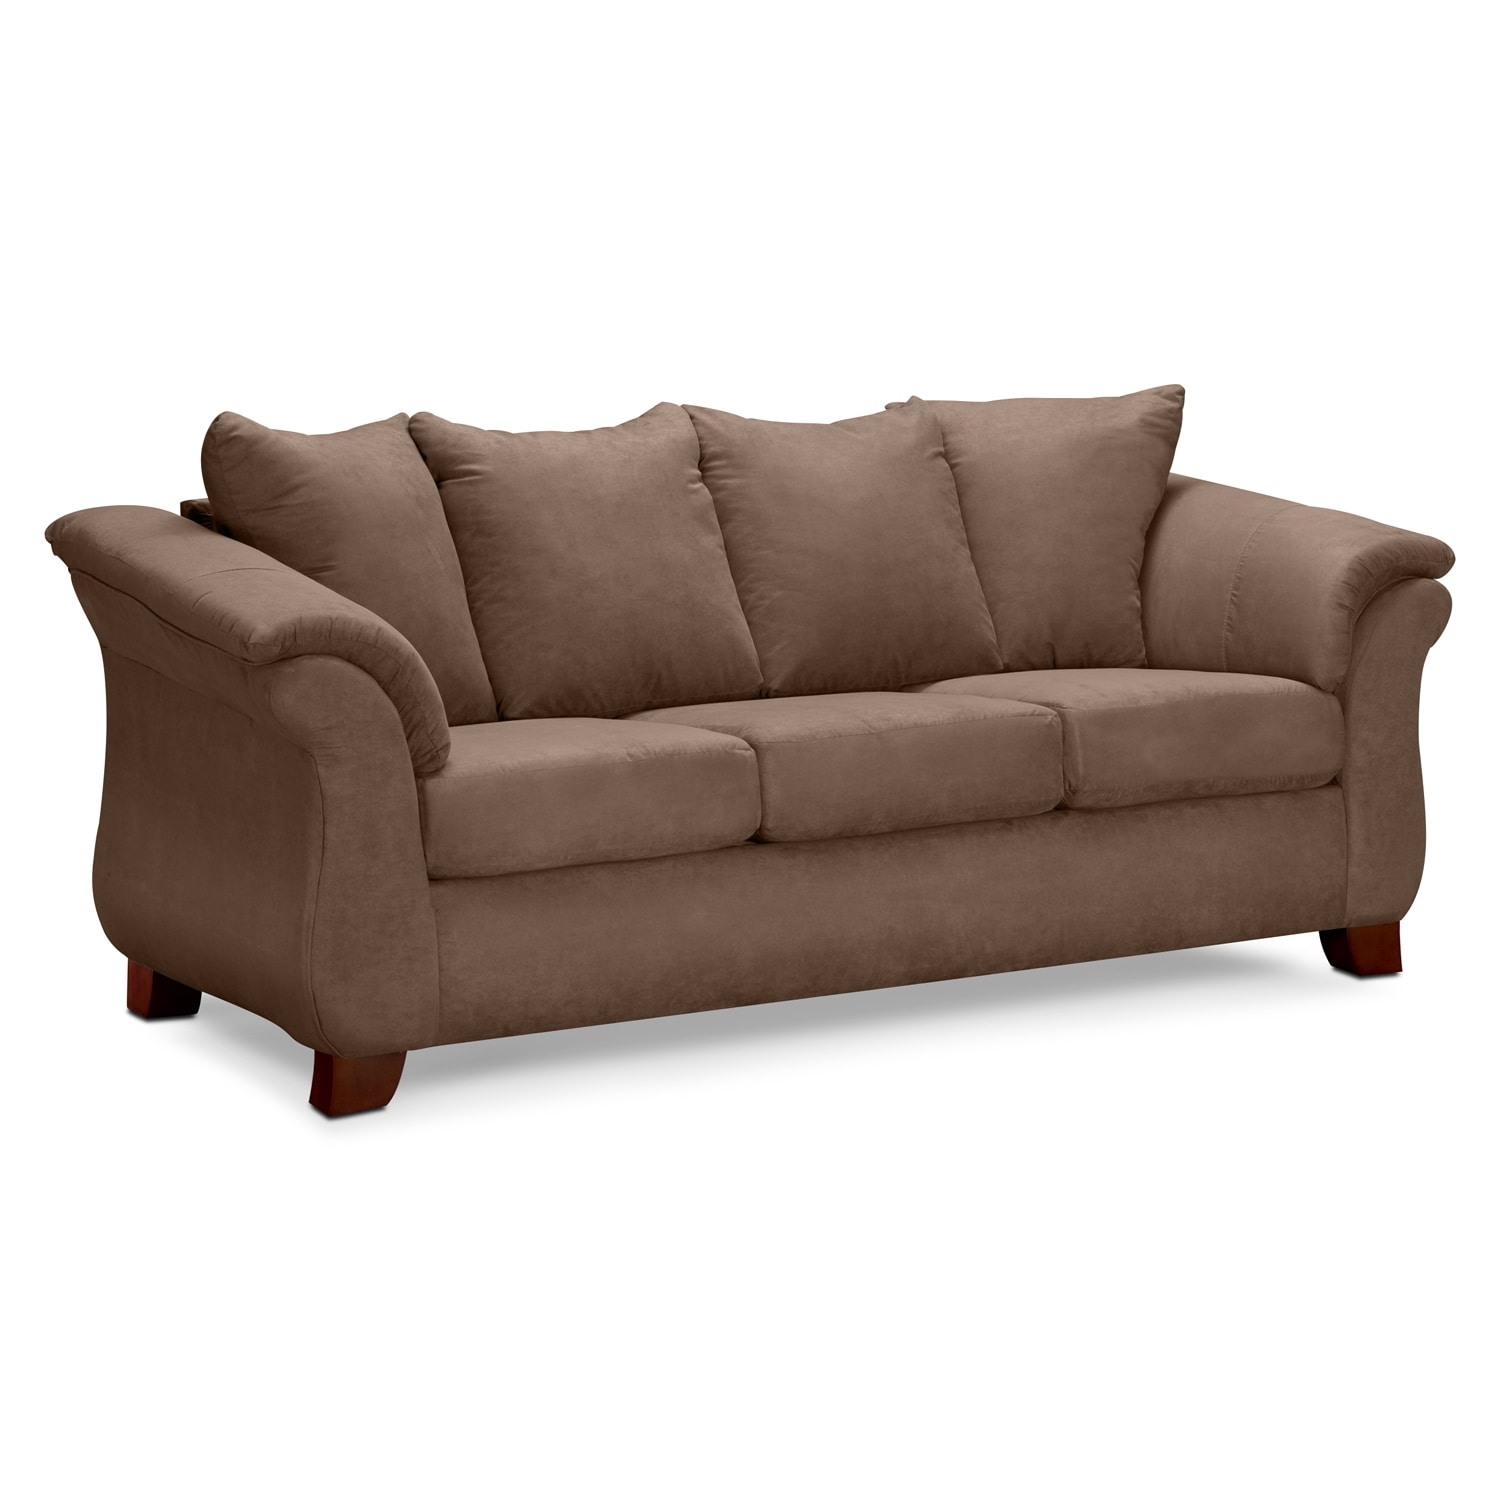 Adrian sofa taupe american signature furniture for Signature furniture